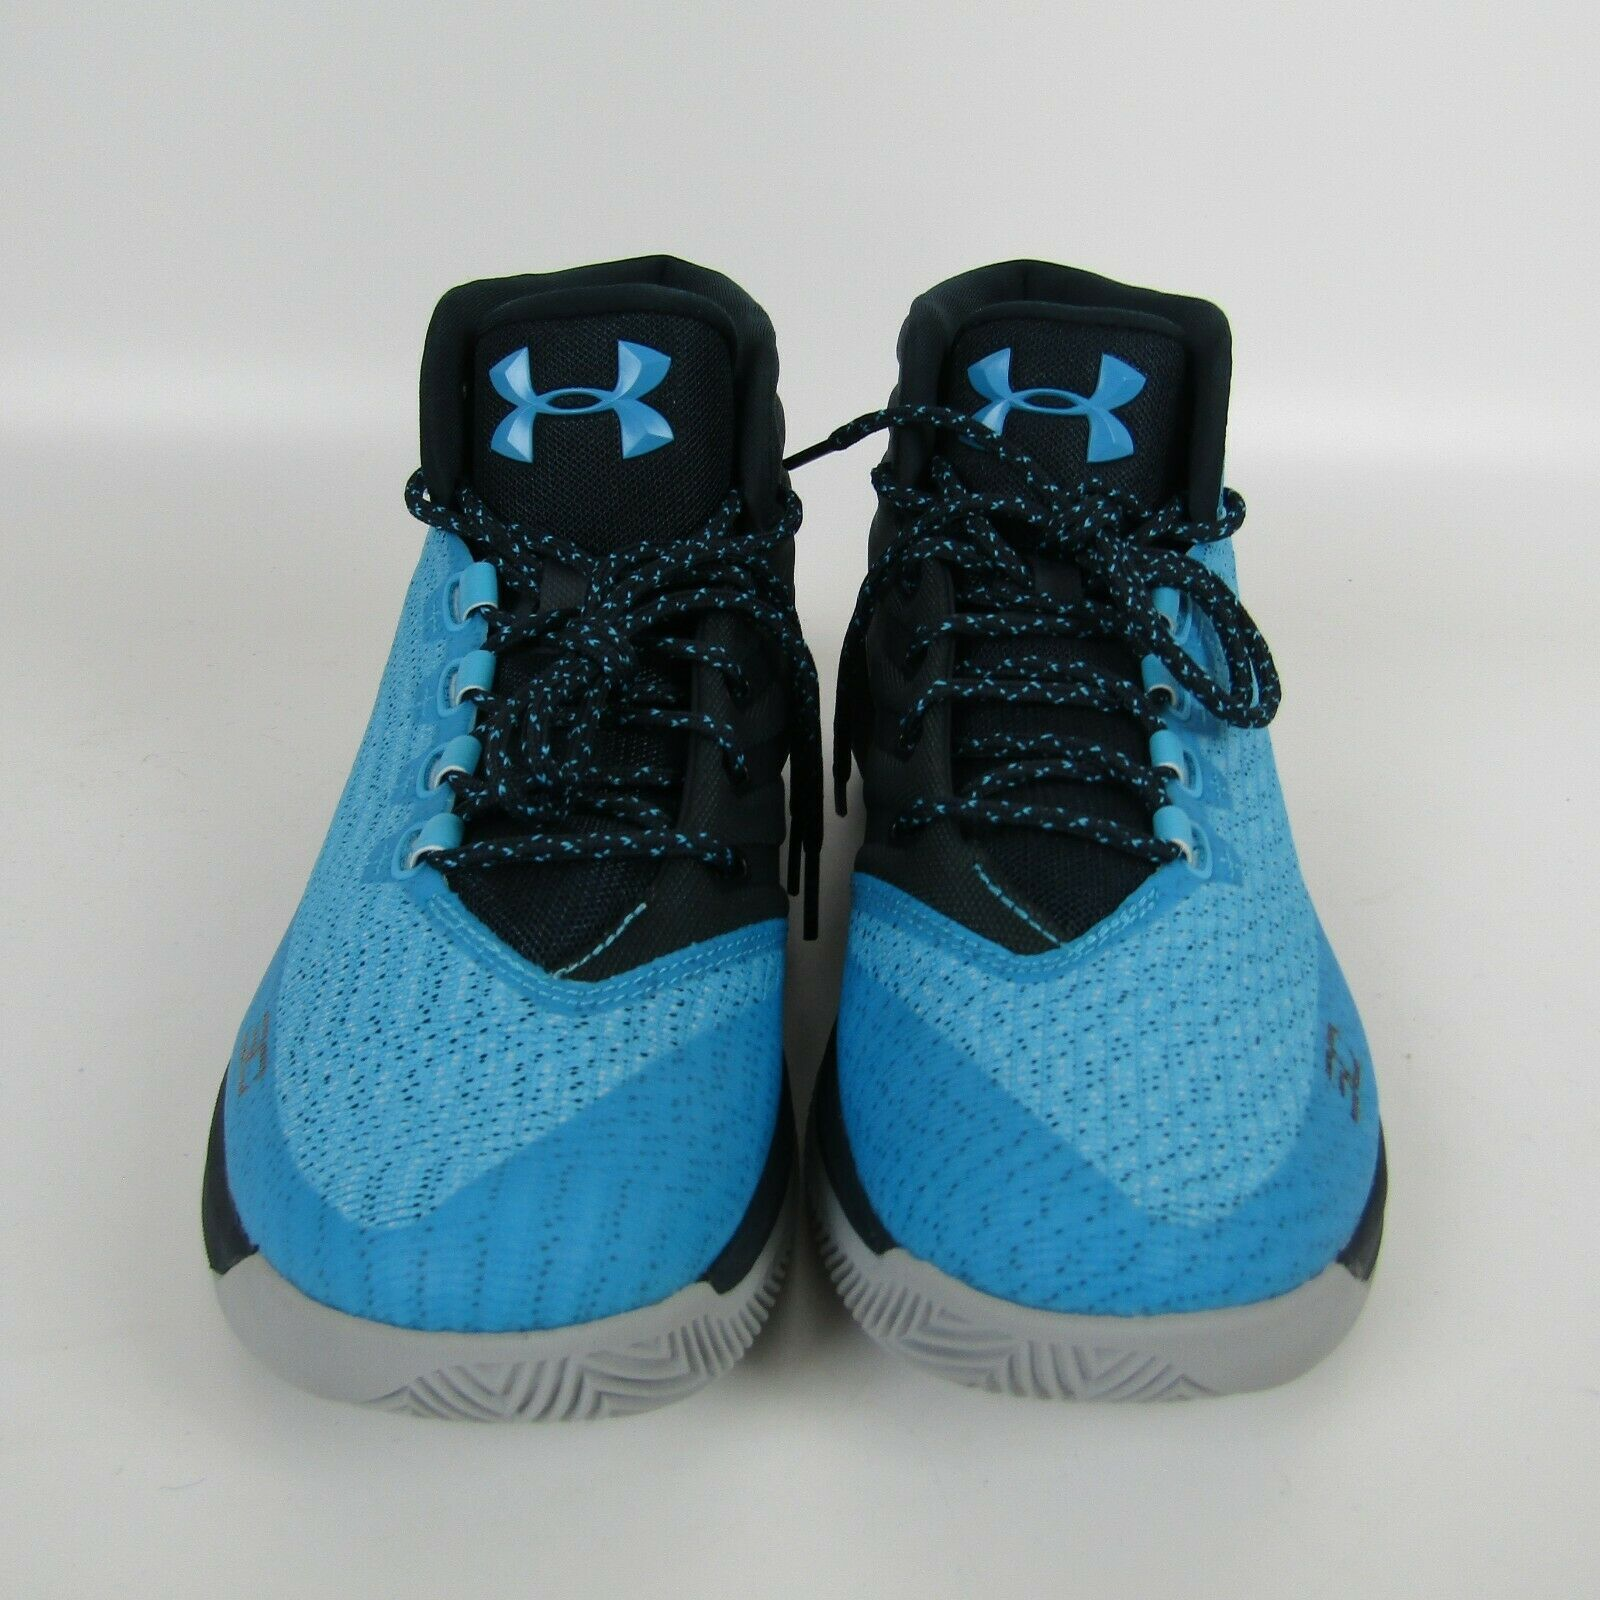 Under Armour Men's Basketball Sneakers Steph Curry 3 Blue Size 10.5 1269279-458 image 4